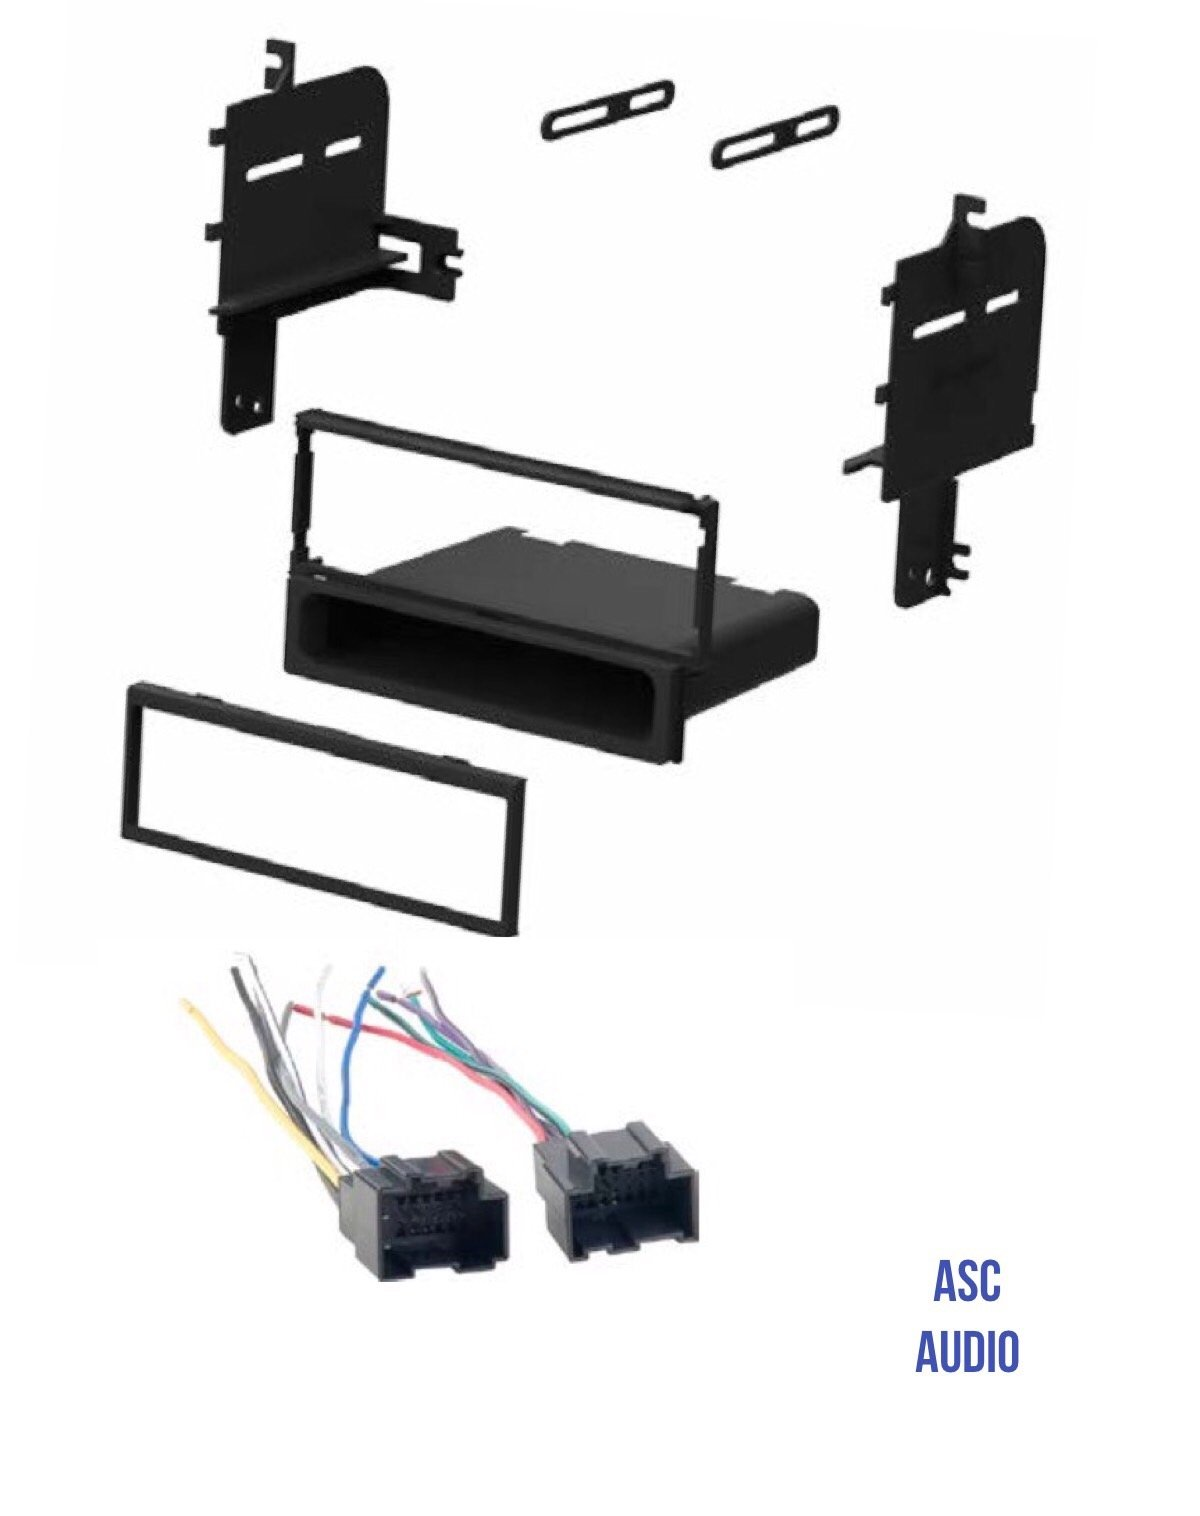 hight resolution of get quotations asc audio car stereo radio install dash kit and wire harness for installing an aftermarket single